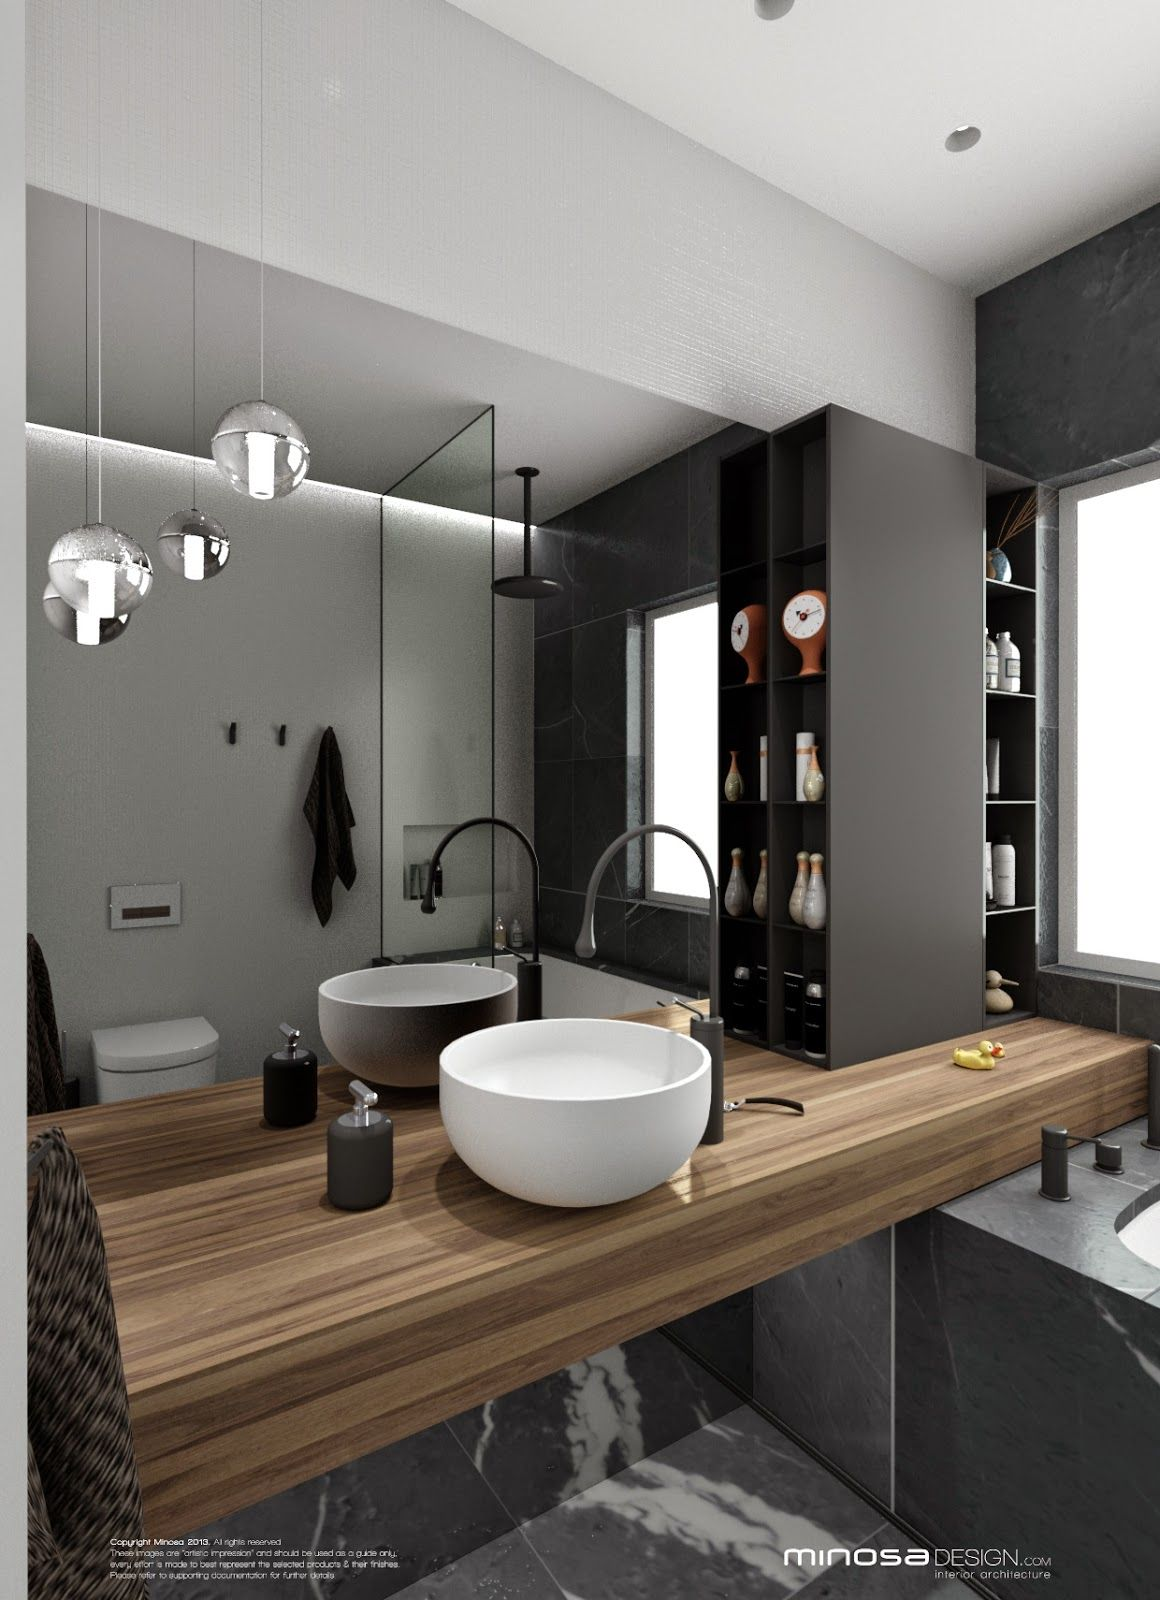 The hero of this bathroom design is the vanity the for Bathroom ideas small spaces photos